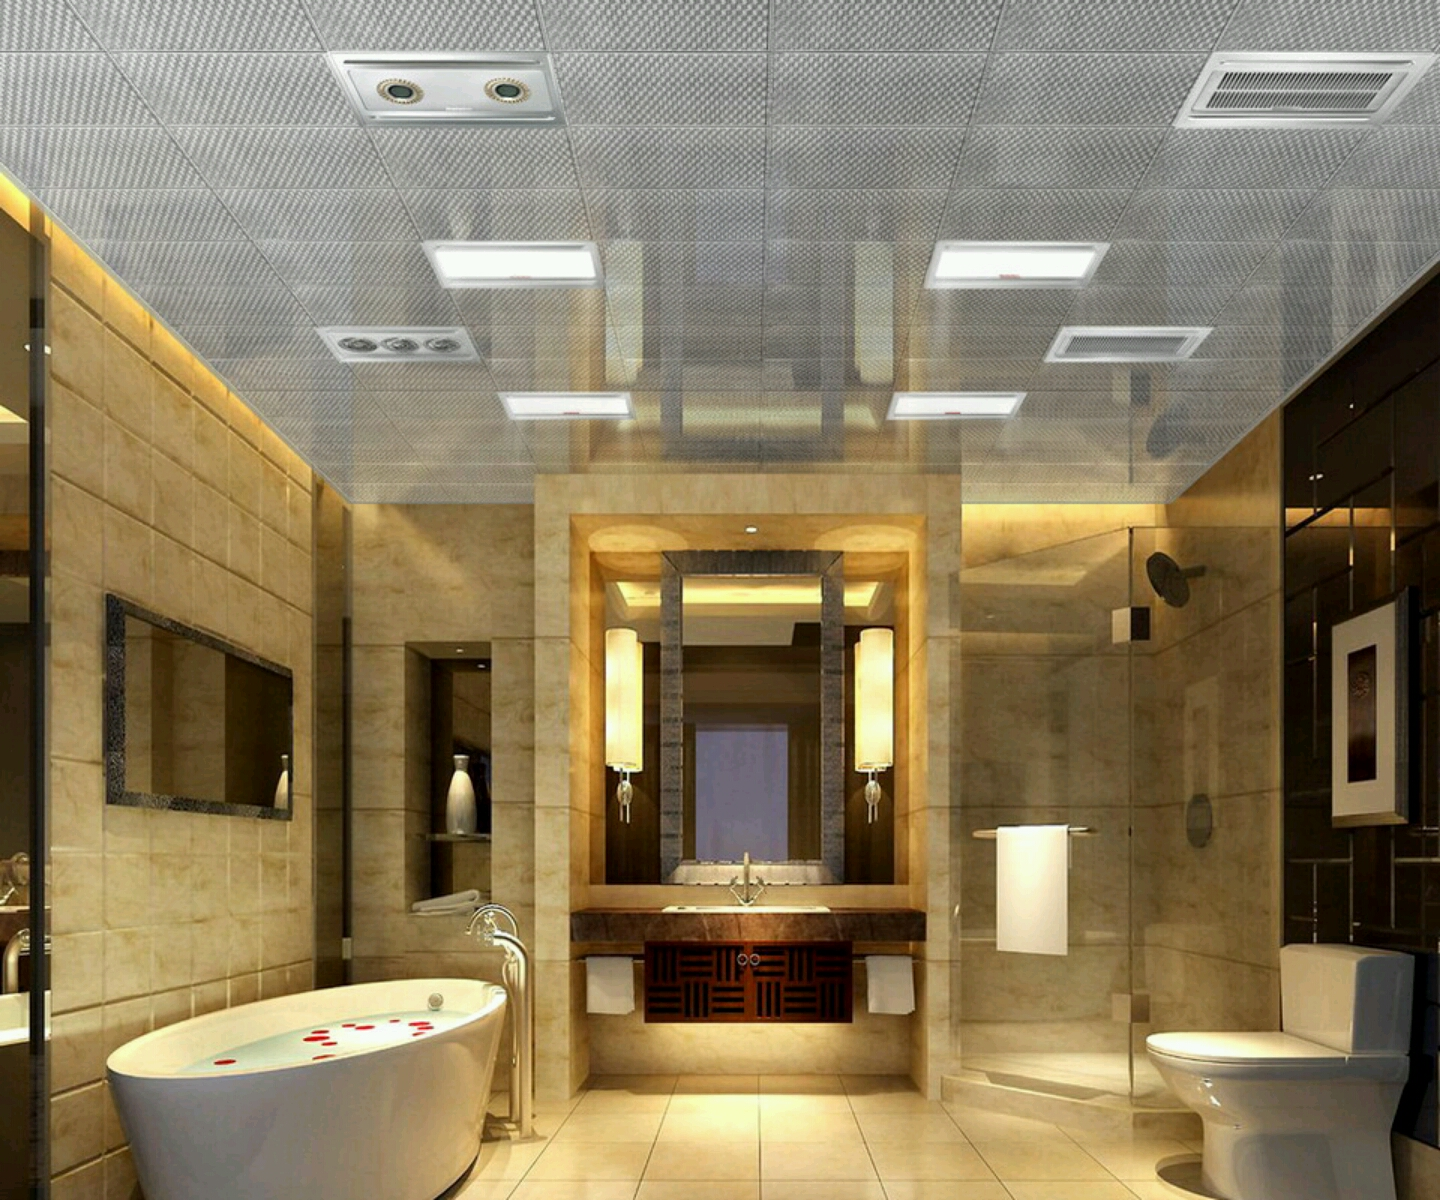 New home designs latest luxury bathrooms designs ideas for Bathroom designs 2013